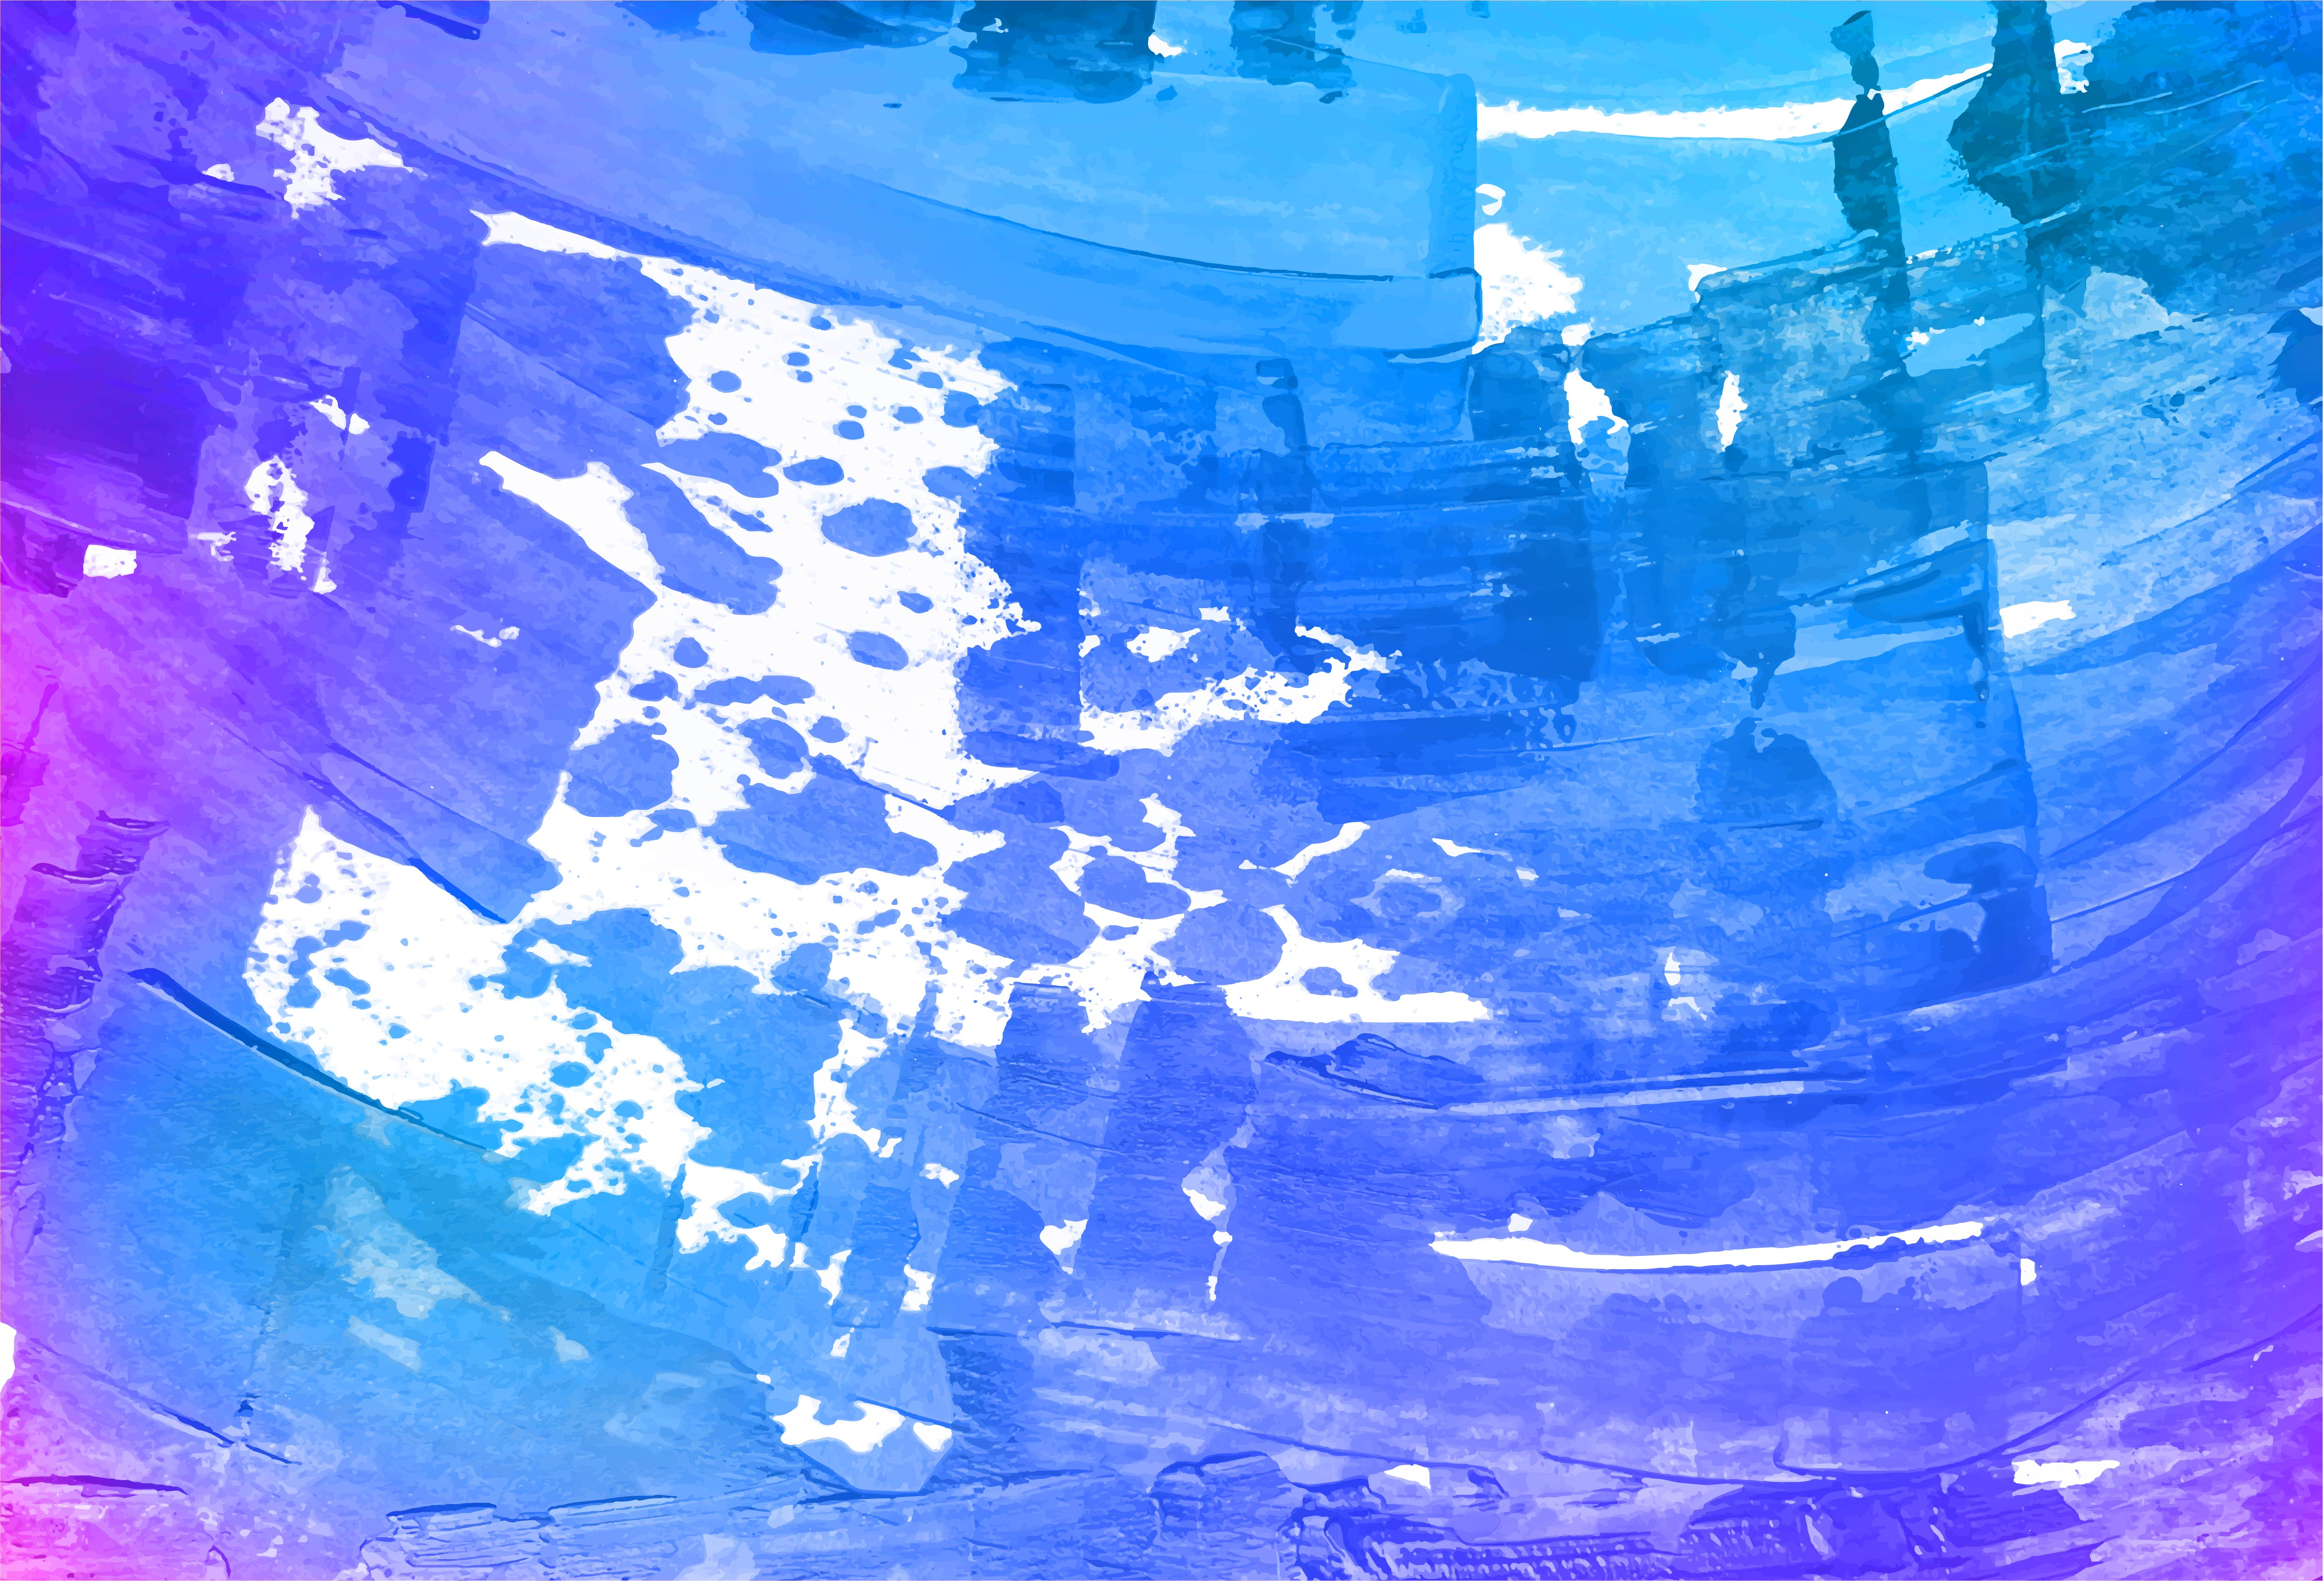 Abstract Purple, Blue Paint Scraped Texture Background